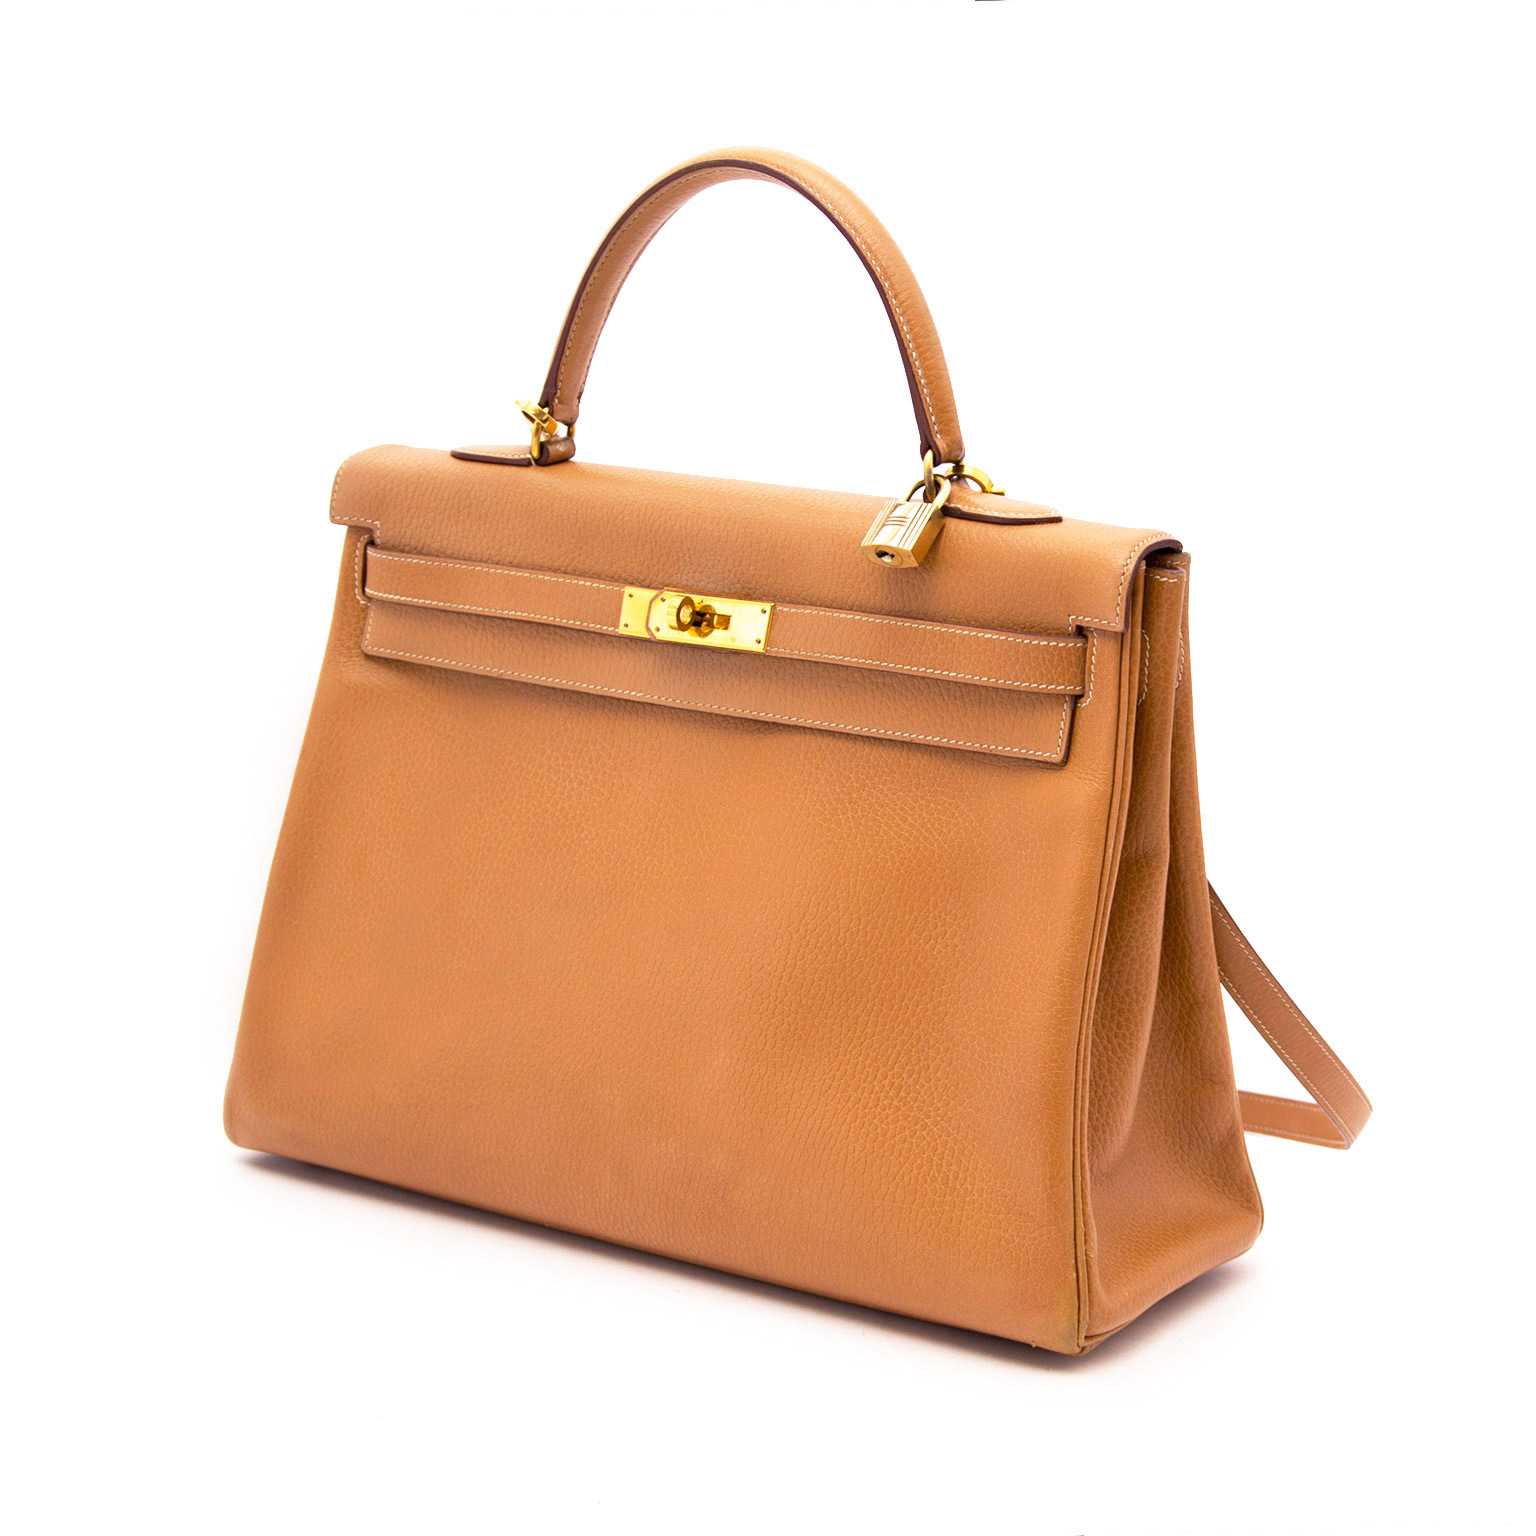 shop safe online Hermès Kelly Camel Vache Liegee 35cm GHW at the best price